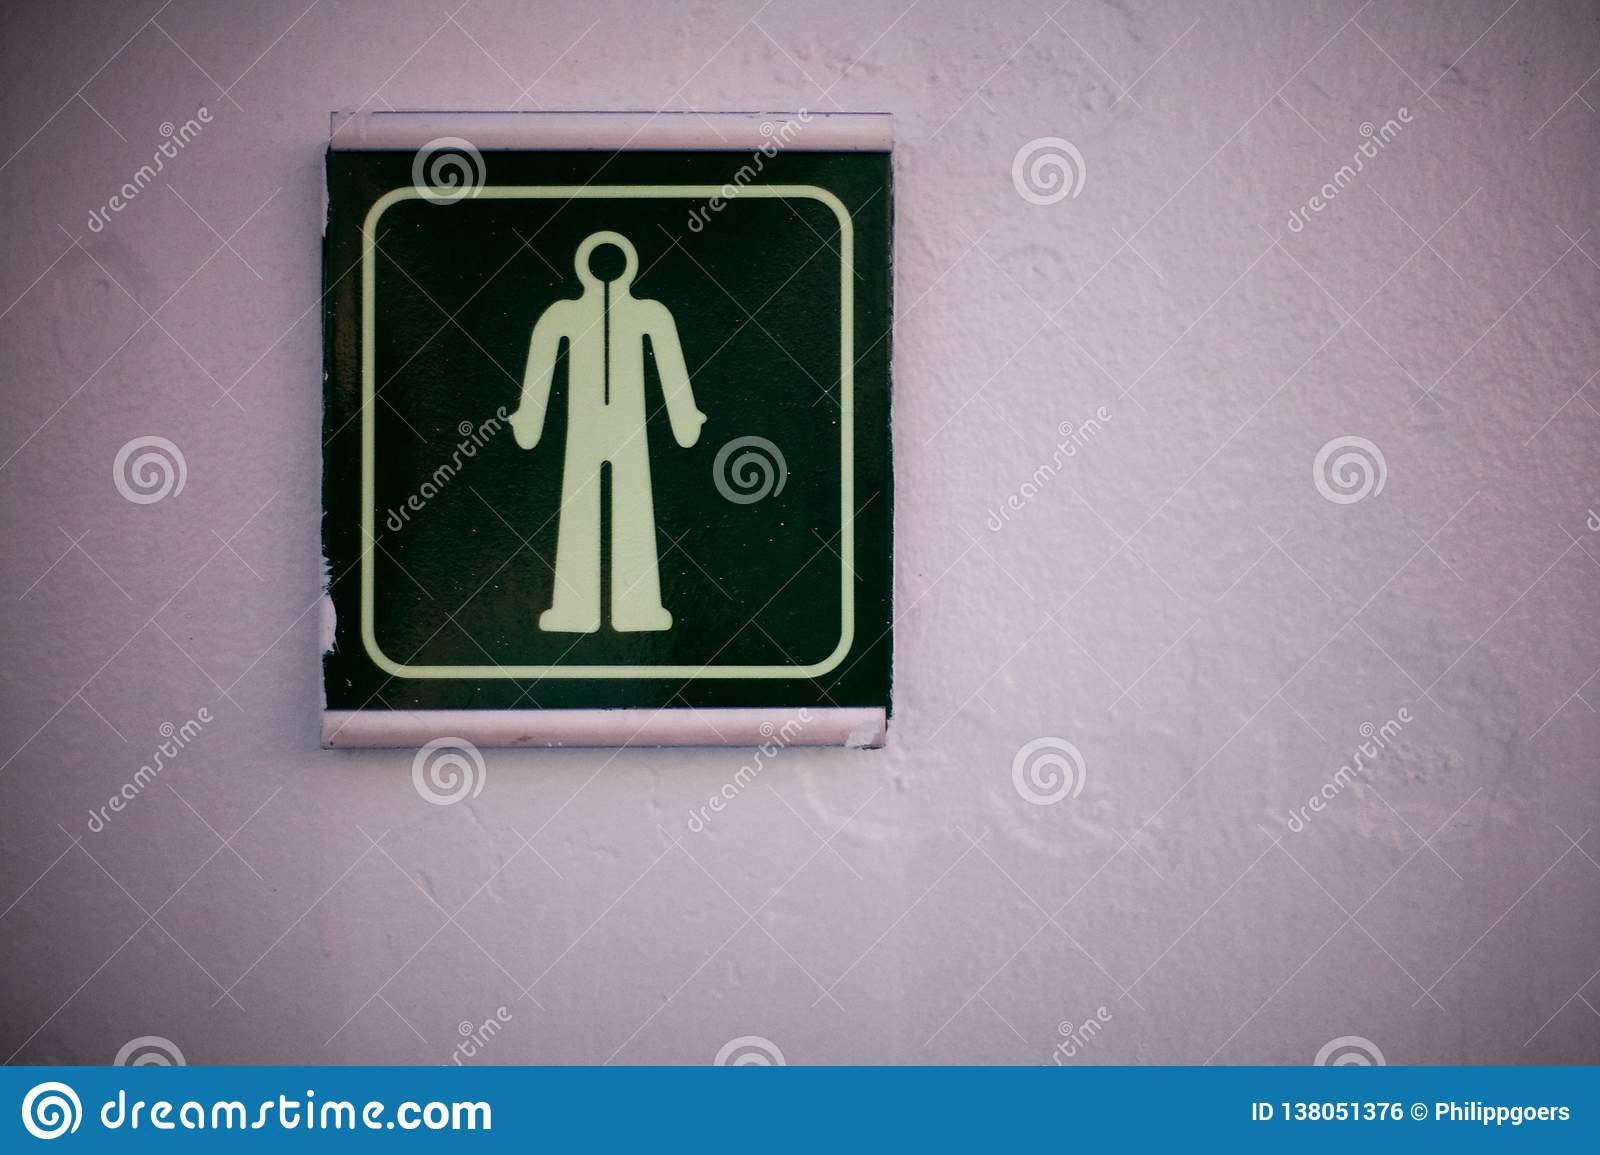 Sign from a man or a diving suit